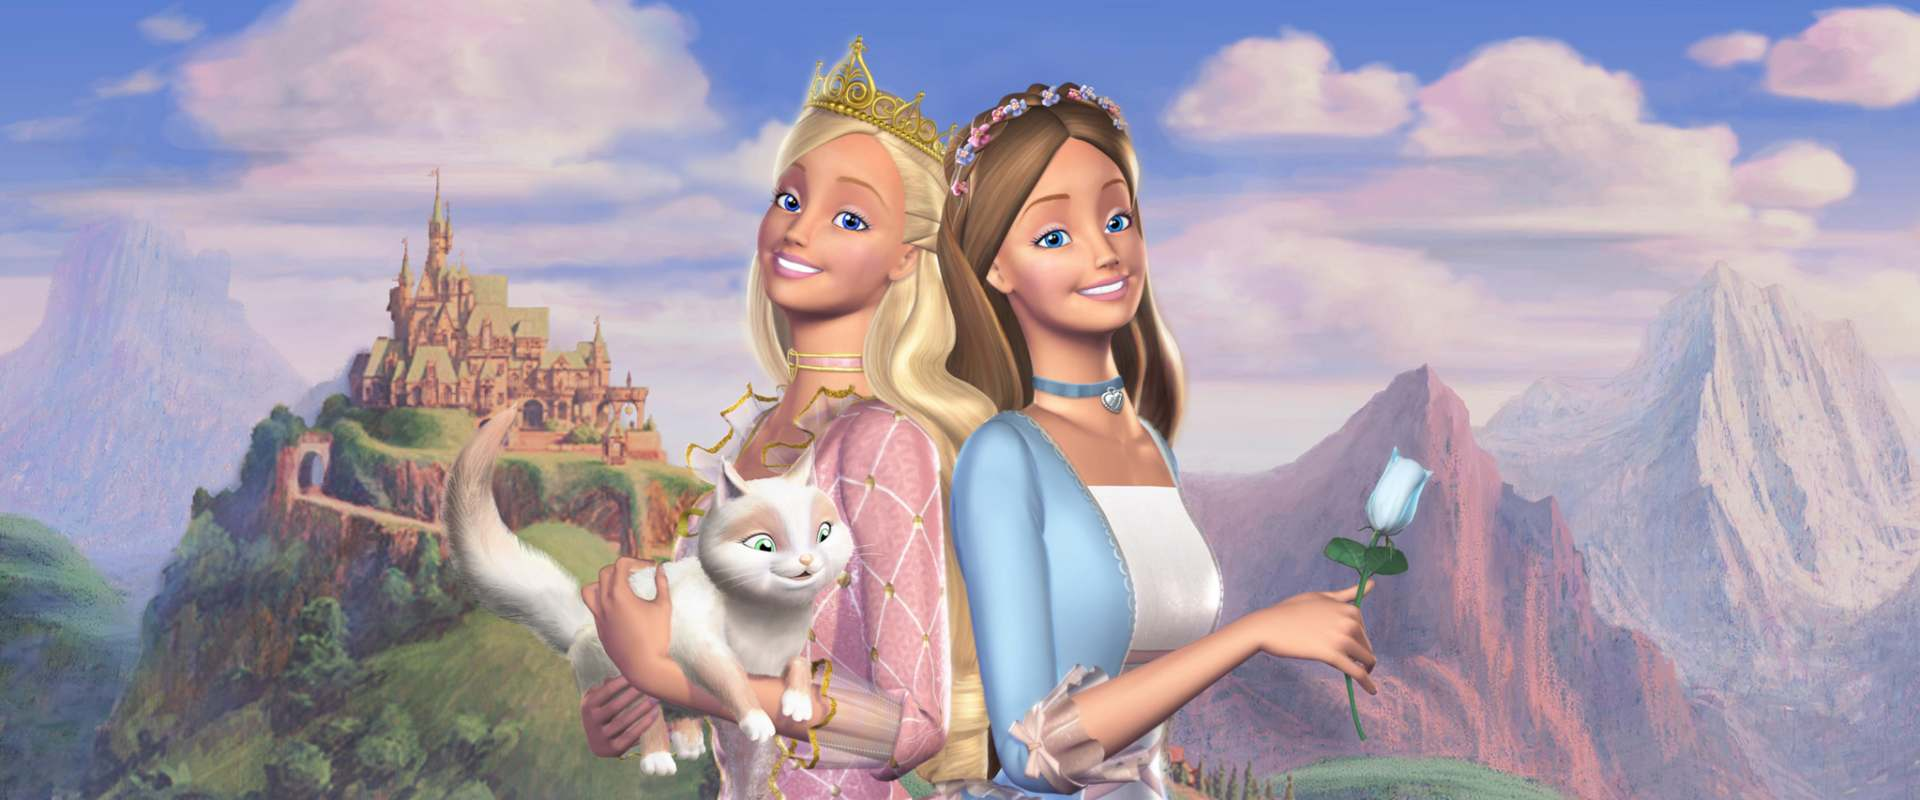 Barbie as the Princess and the Pauper background 2